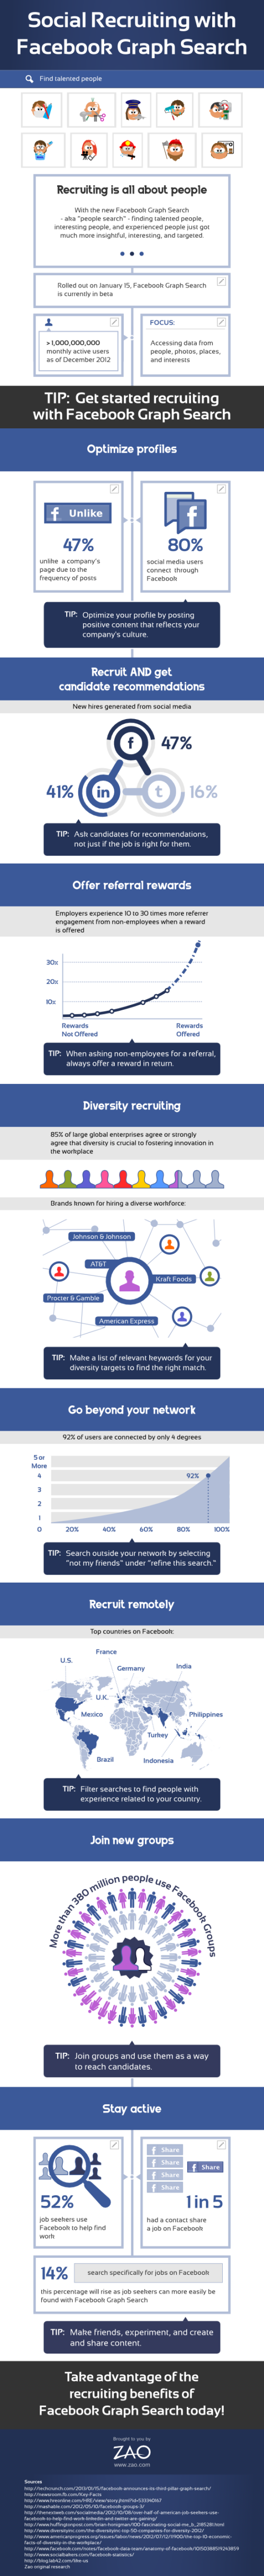 social-recruiting-with-facebook-graph-search-infographic_5155944e847df